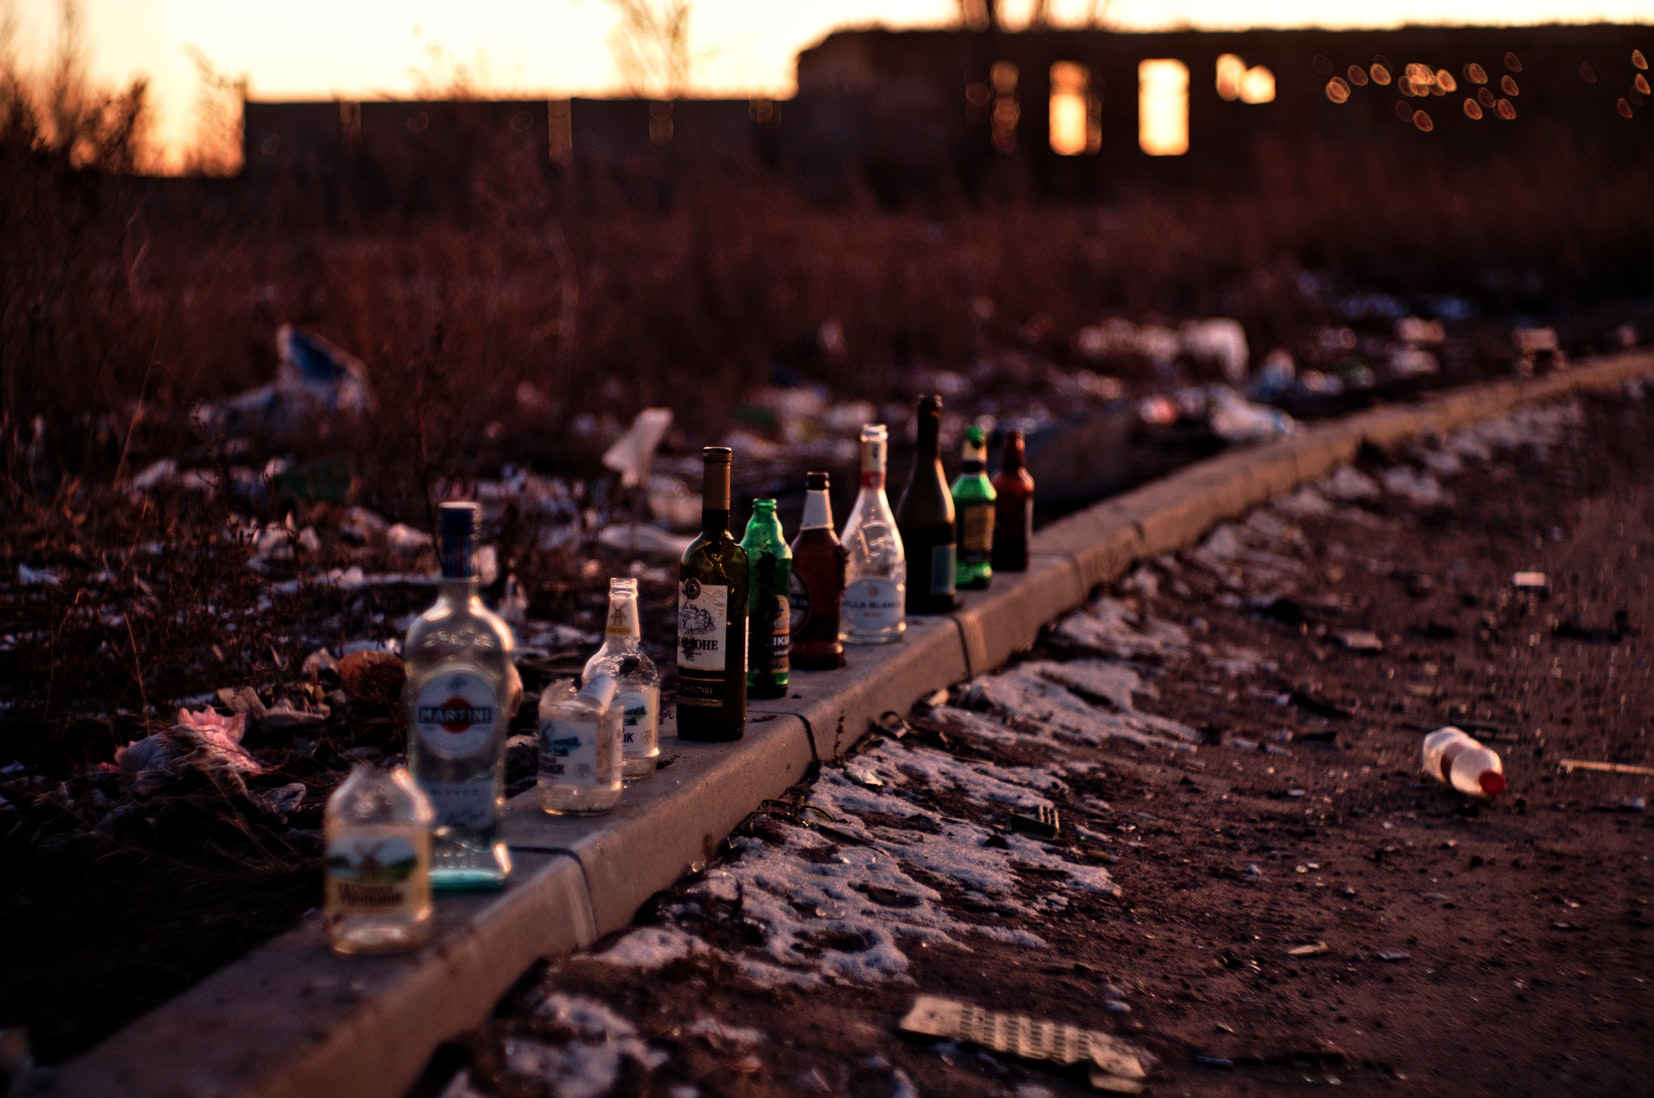 Bottles of liquor lined up on concrete surface outside